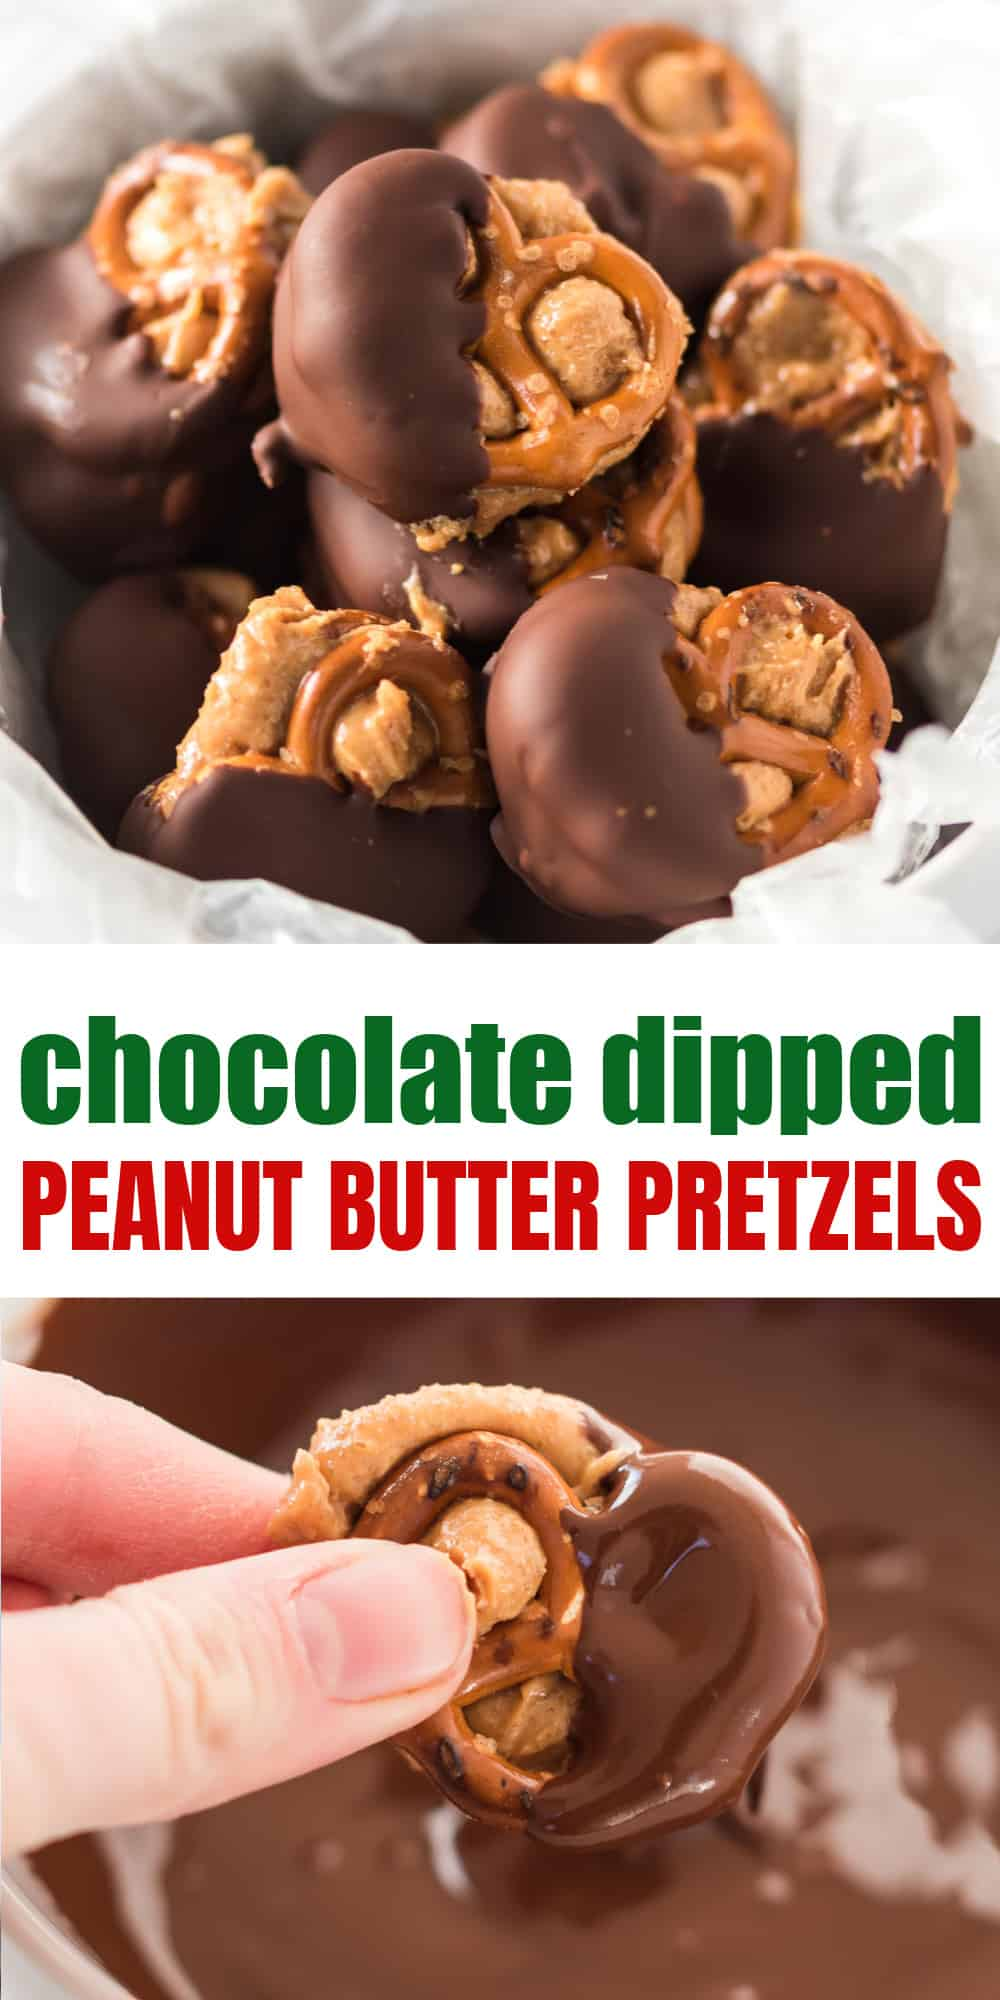 """image with text """"chocolate dipped peanut butter pretzels"""""""